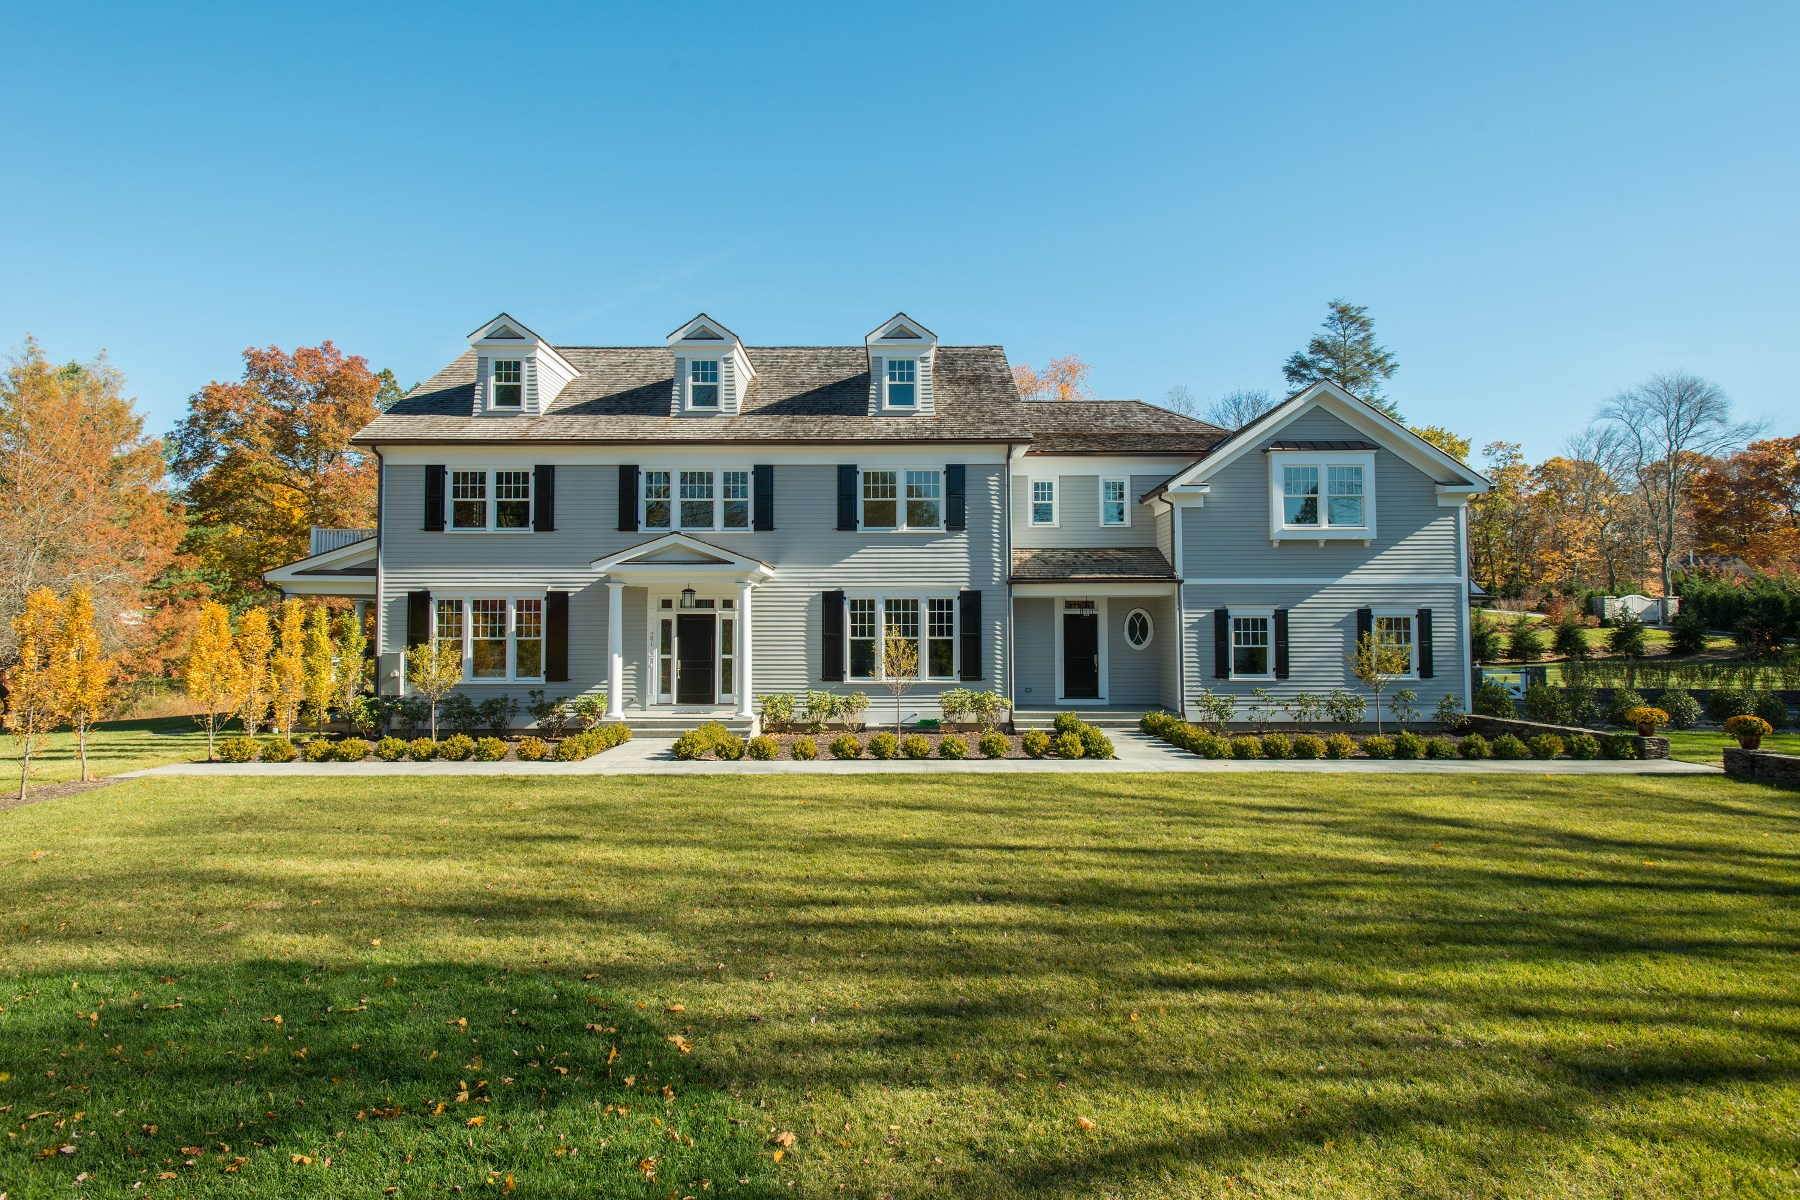 Single Family Home for Sale at Stanwich Road 291 Stanwich Road, Mid-Country, Greenwich, Connecticut, 06830 United States